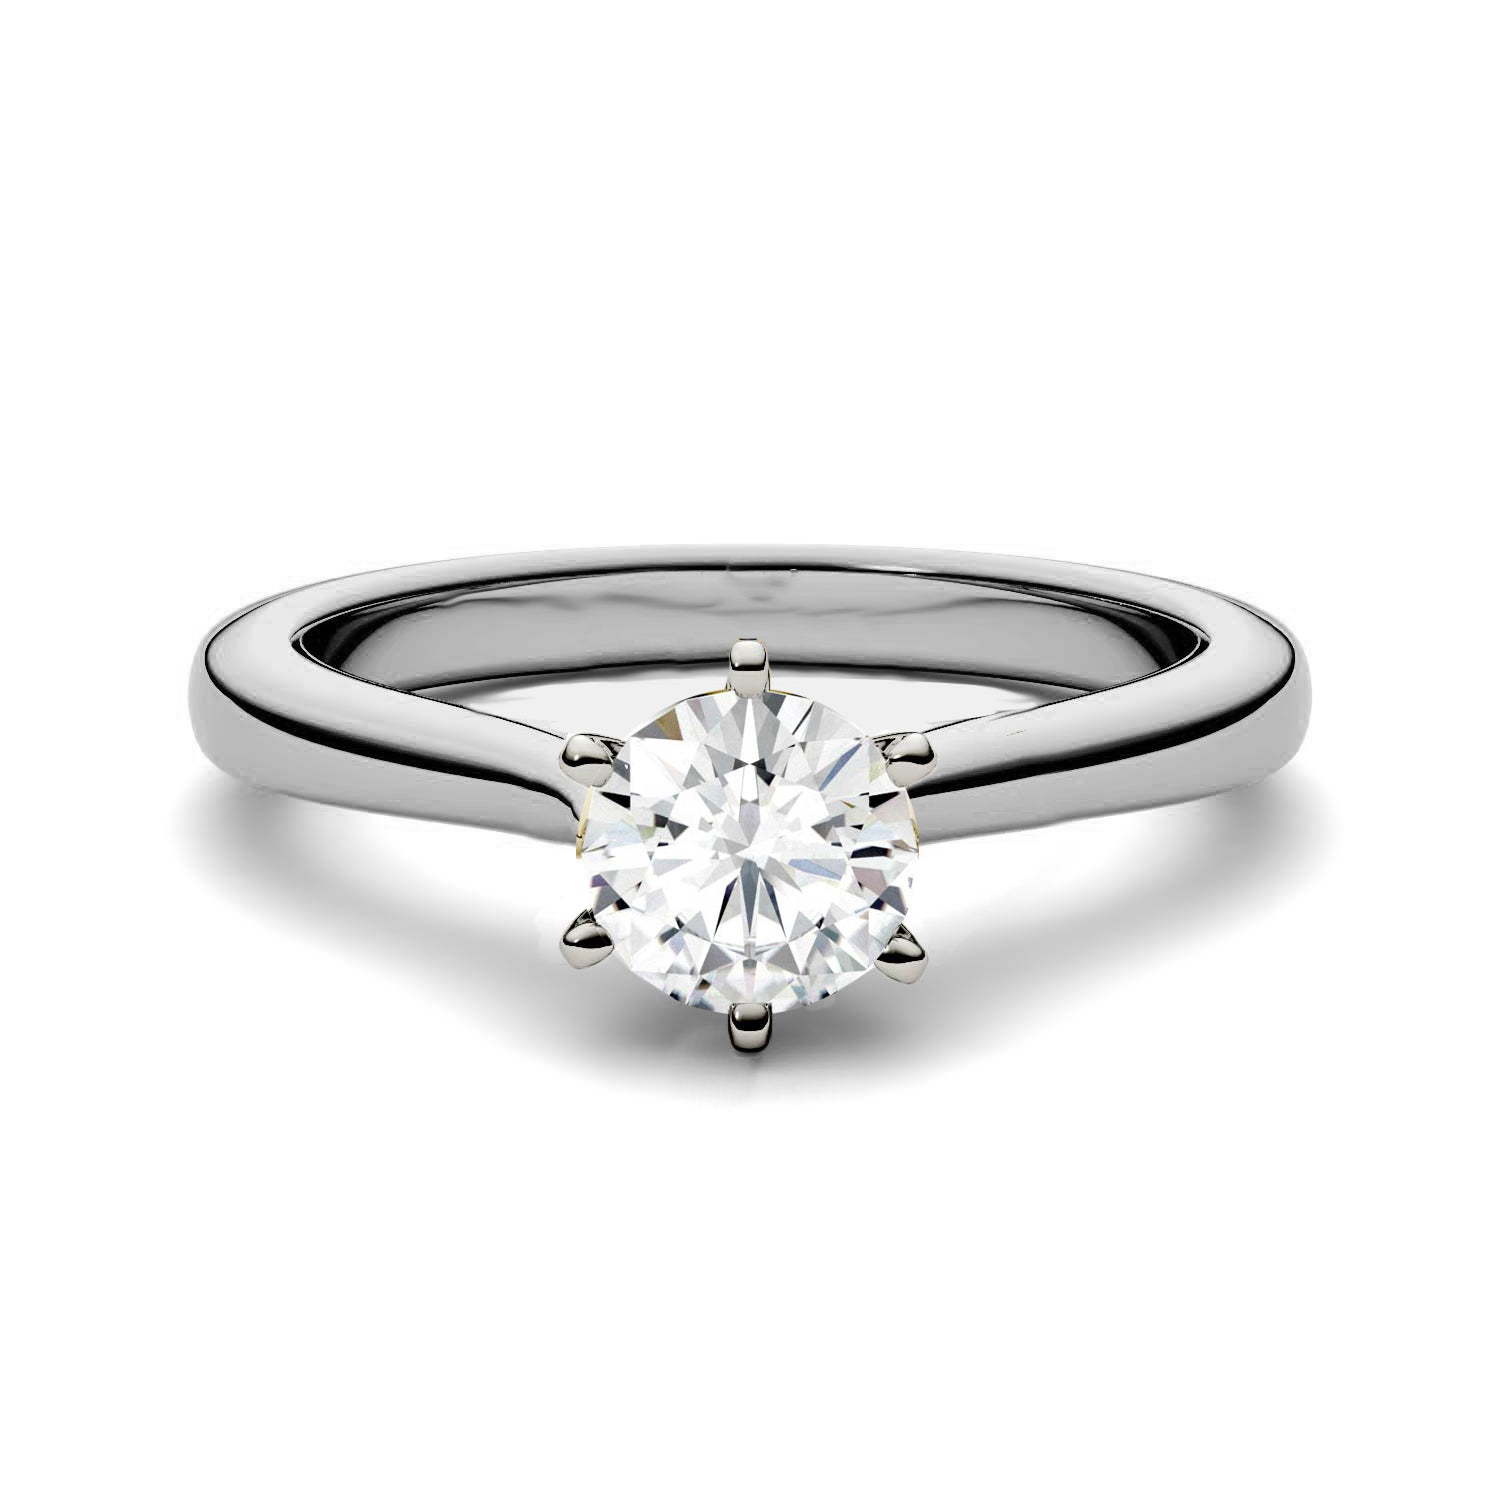 5mm Charles & Colvard Moissanite Solitaire 6-Prong Engagement Ring - Jewelry by Johan